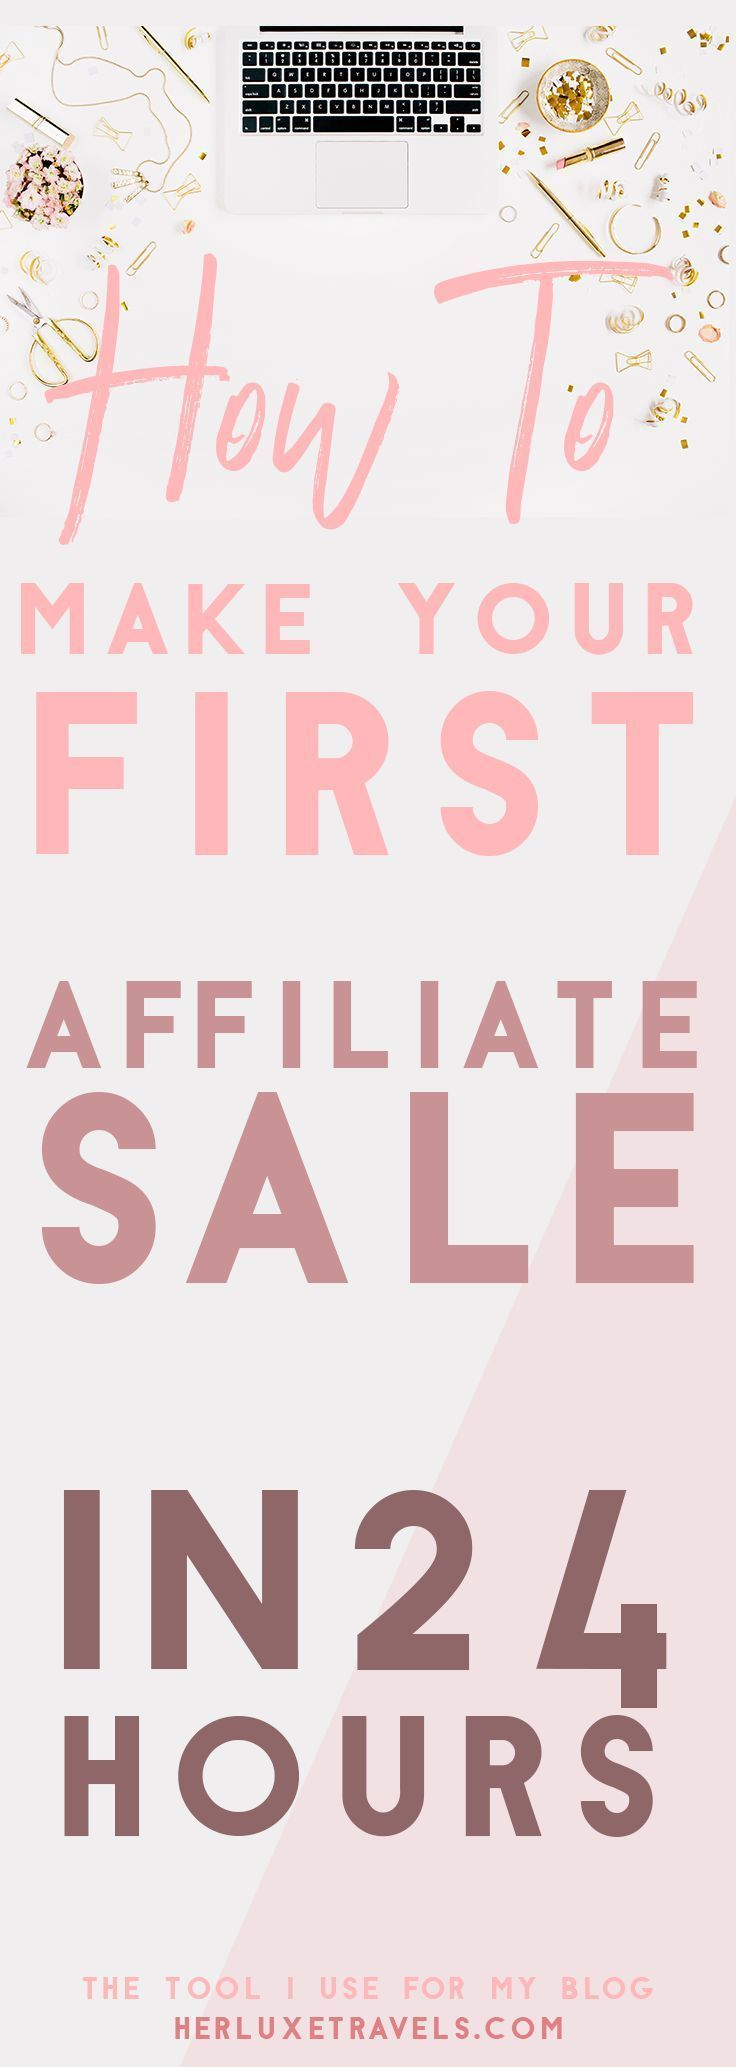 How to Make your First Affiliate Sale In 24 HOURS!! This tool is amazing , I used it to start earning affiliate income on my brand new blog!